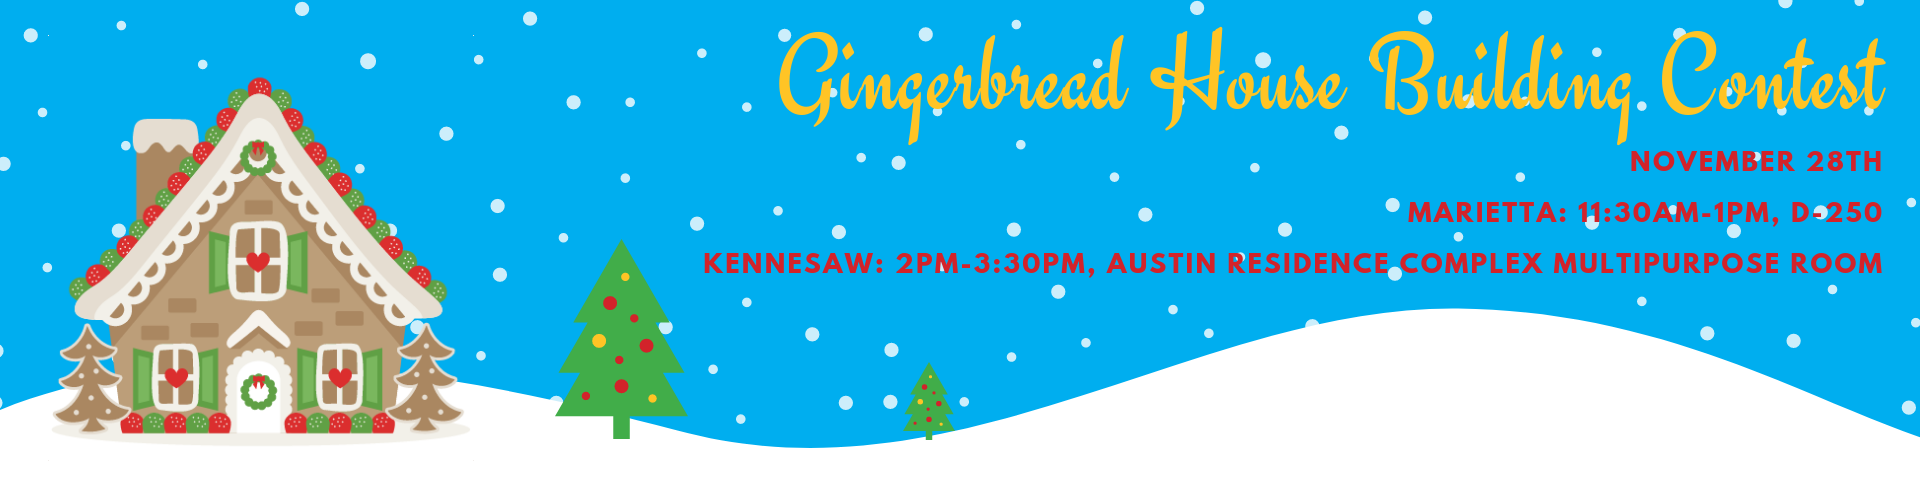 Honors Gingerbread House Building Contest